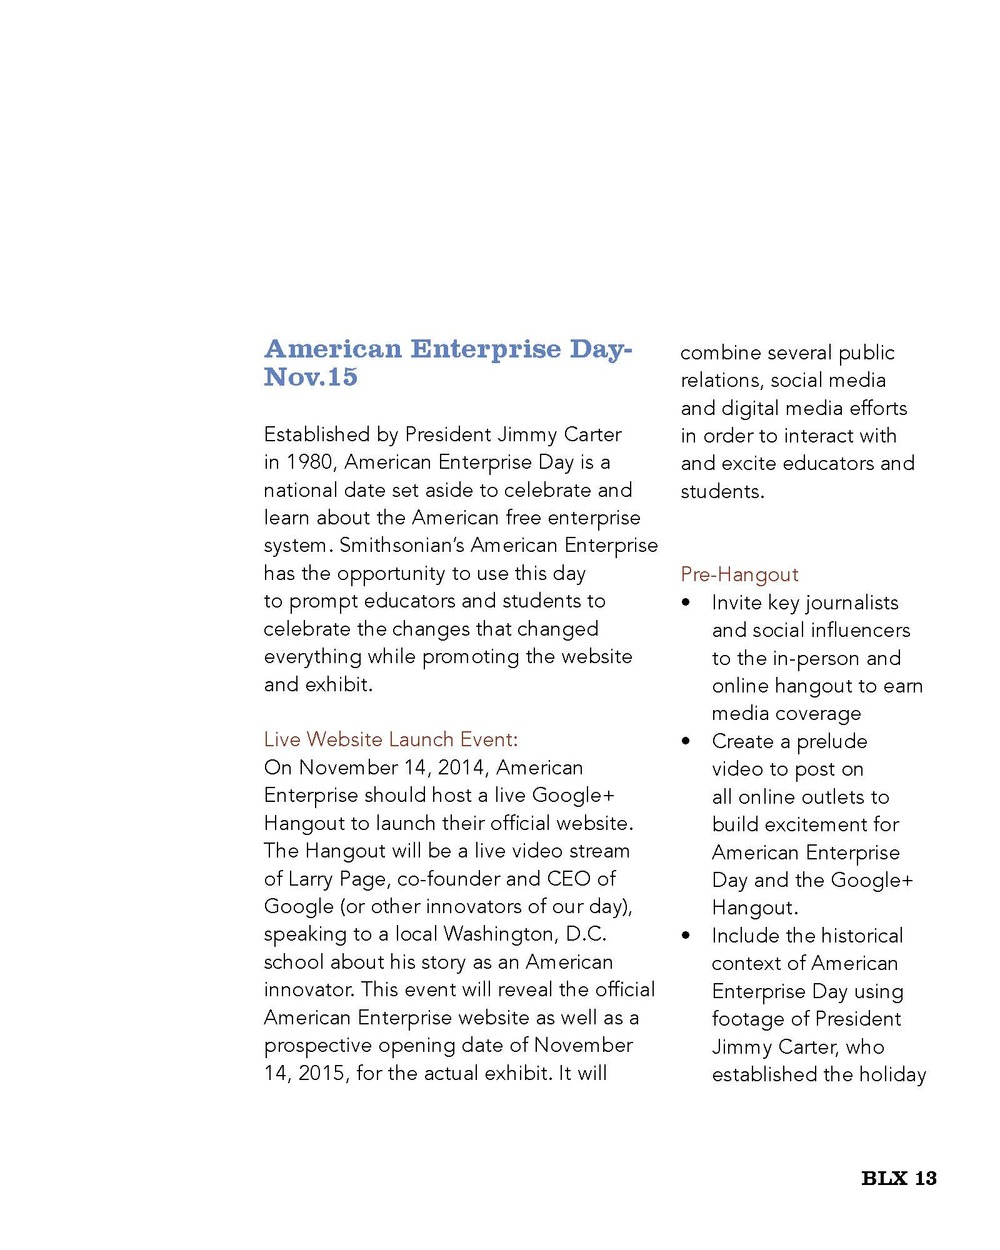 American Enterprise Plans Book%2C 2013%28cut%29_Page_47.jpg